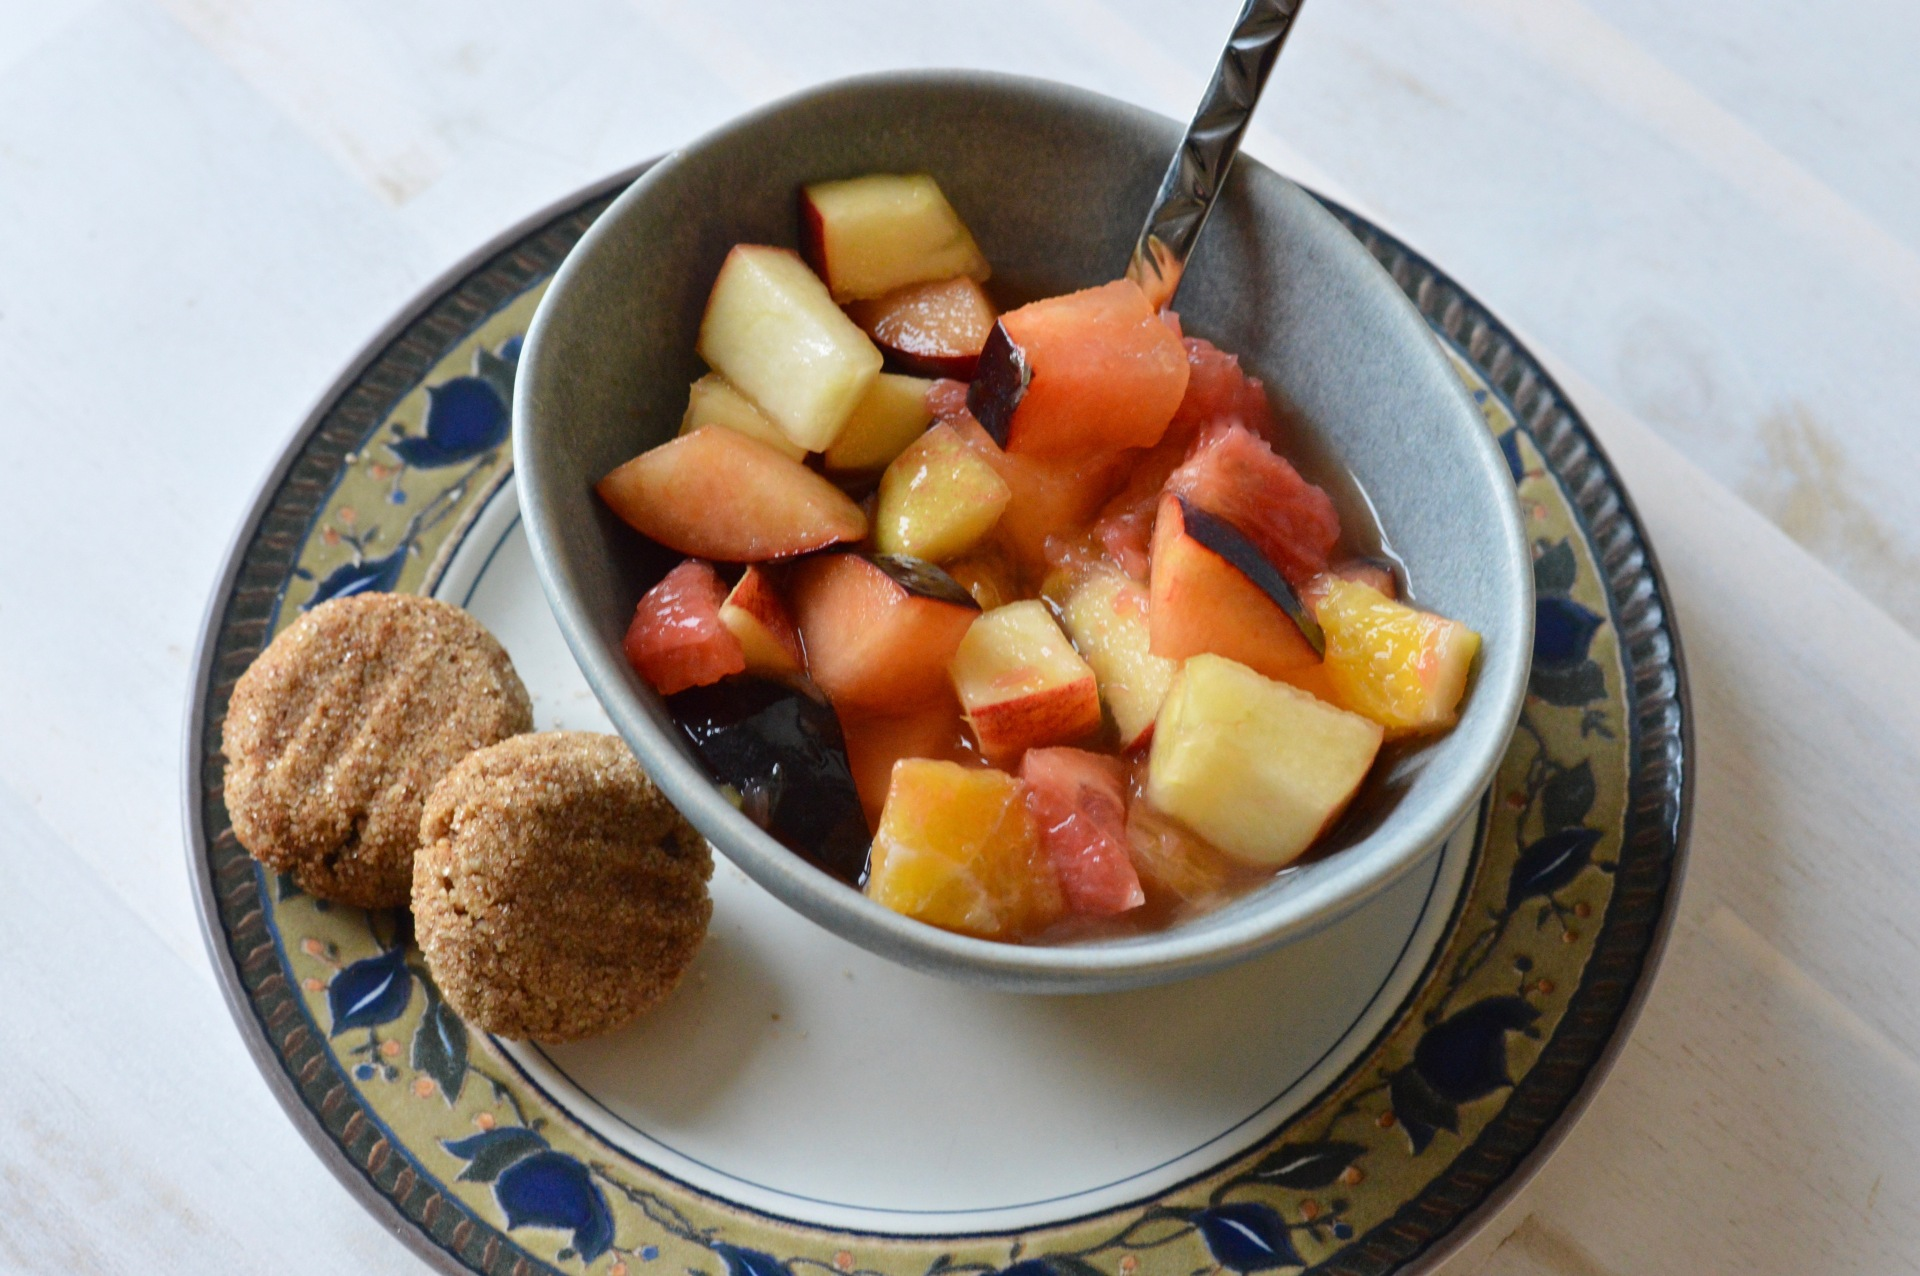 Almond cinnamon cookies and fruit salad